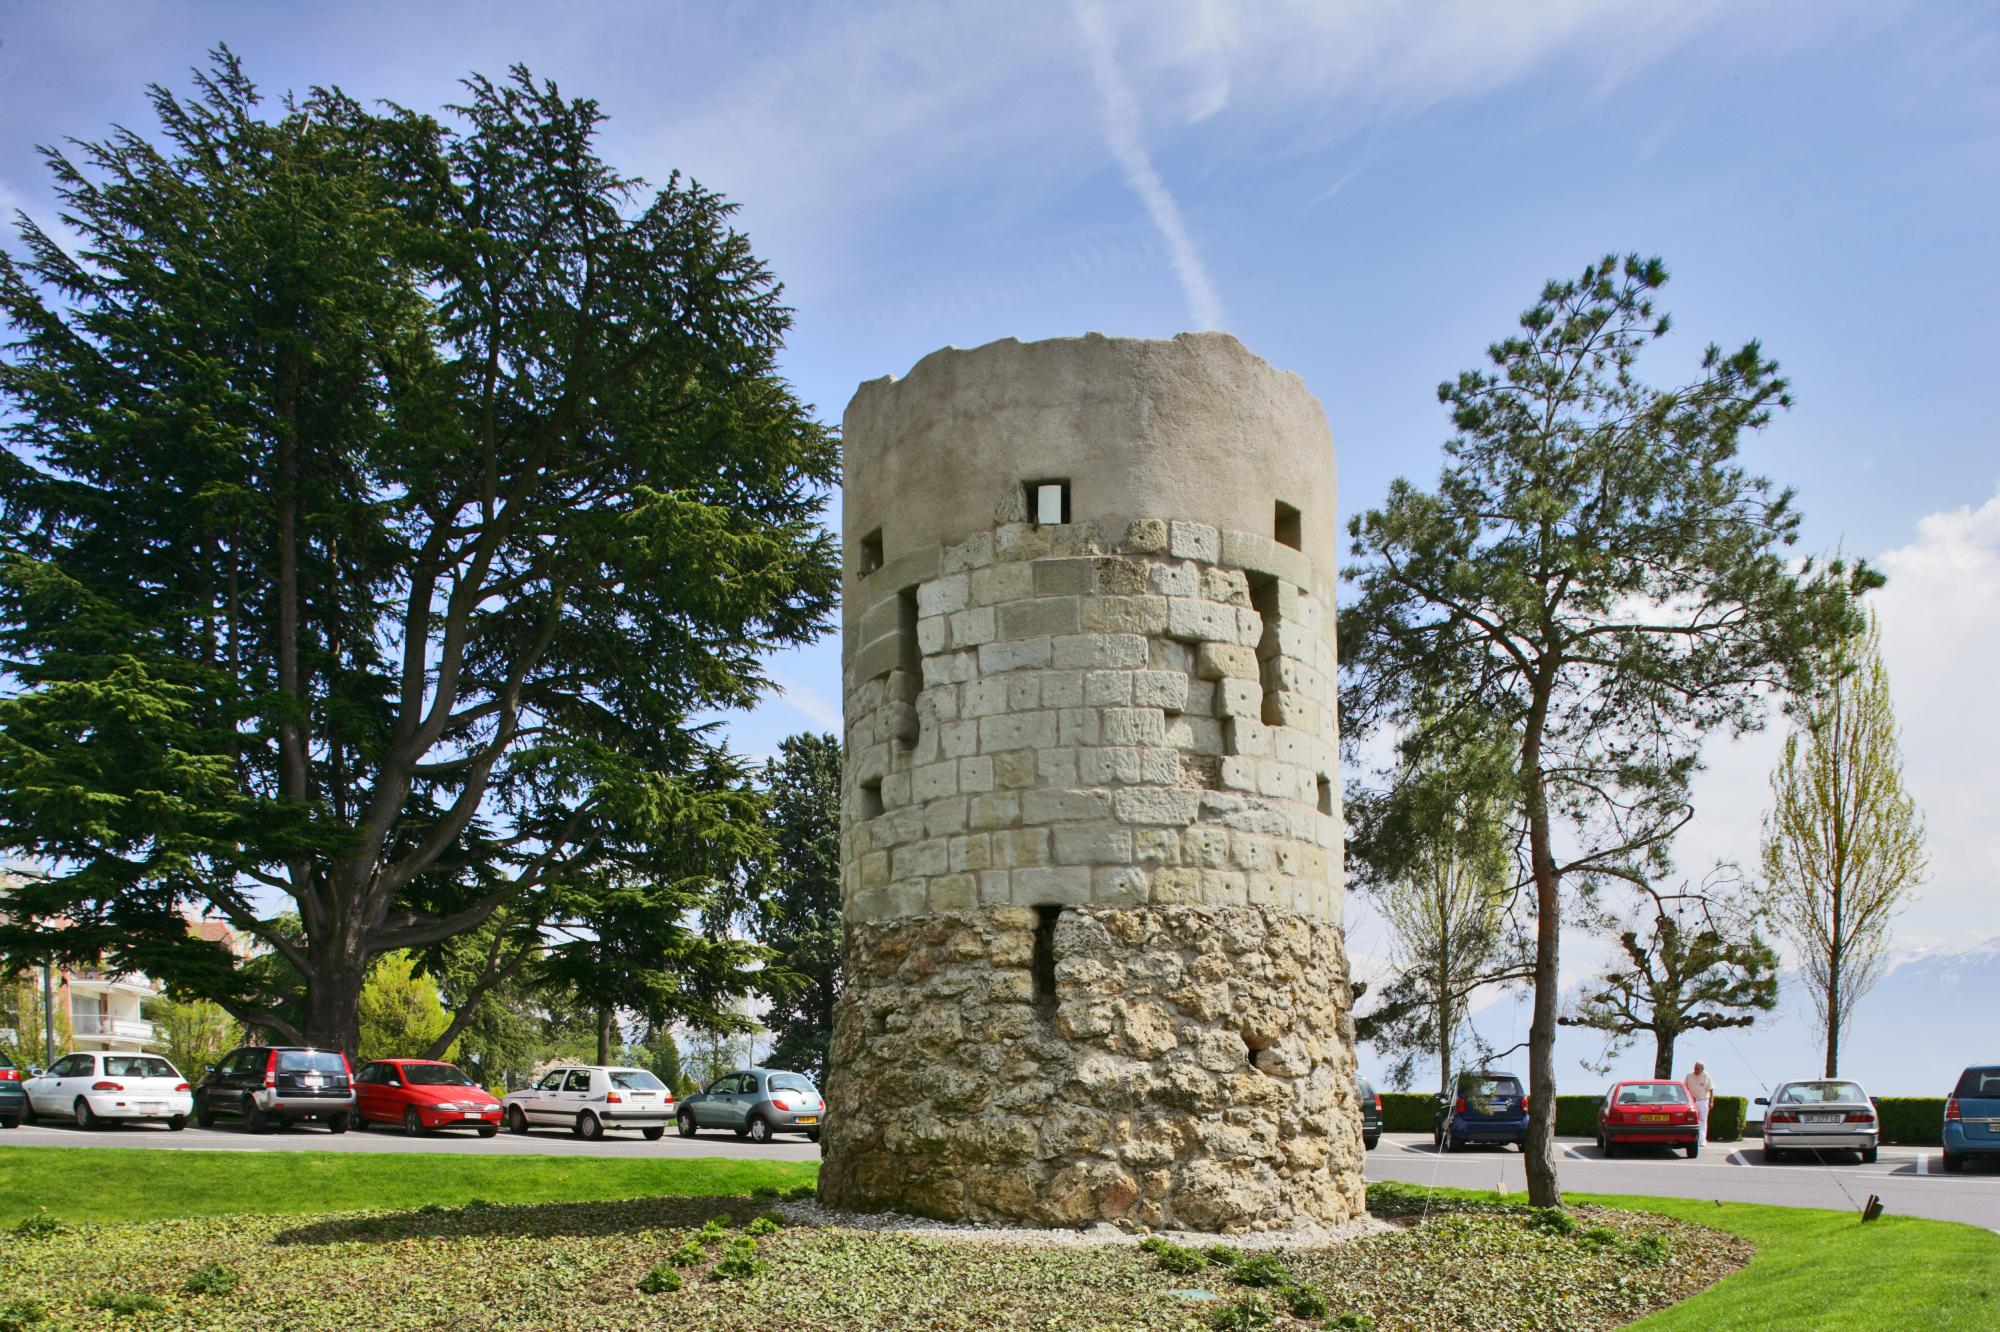 The Haldimand Tower